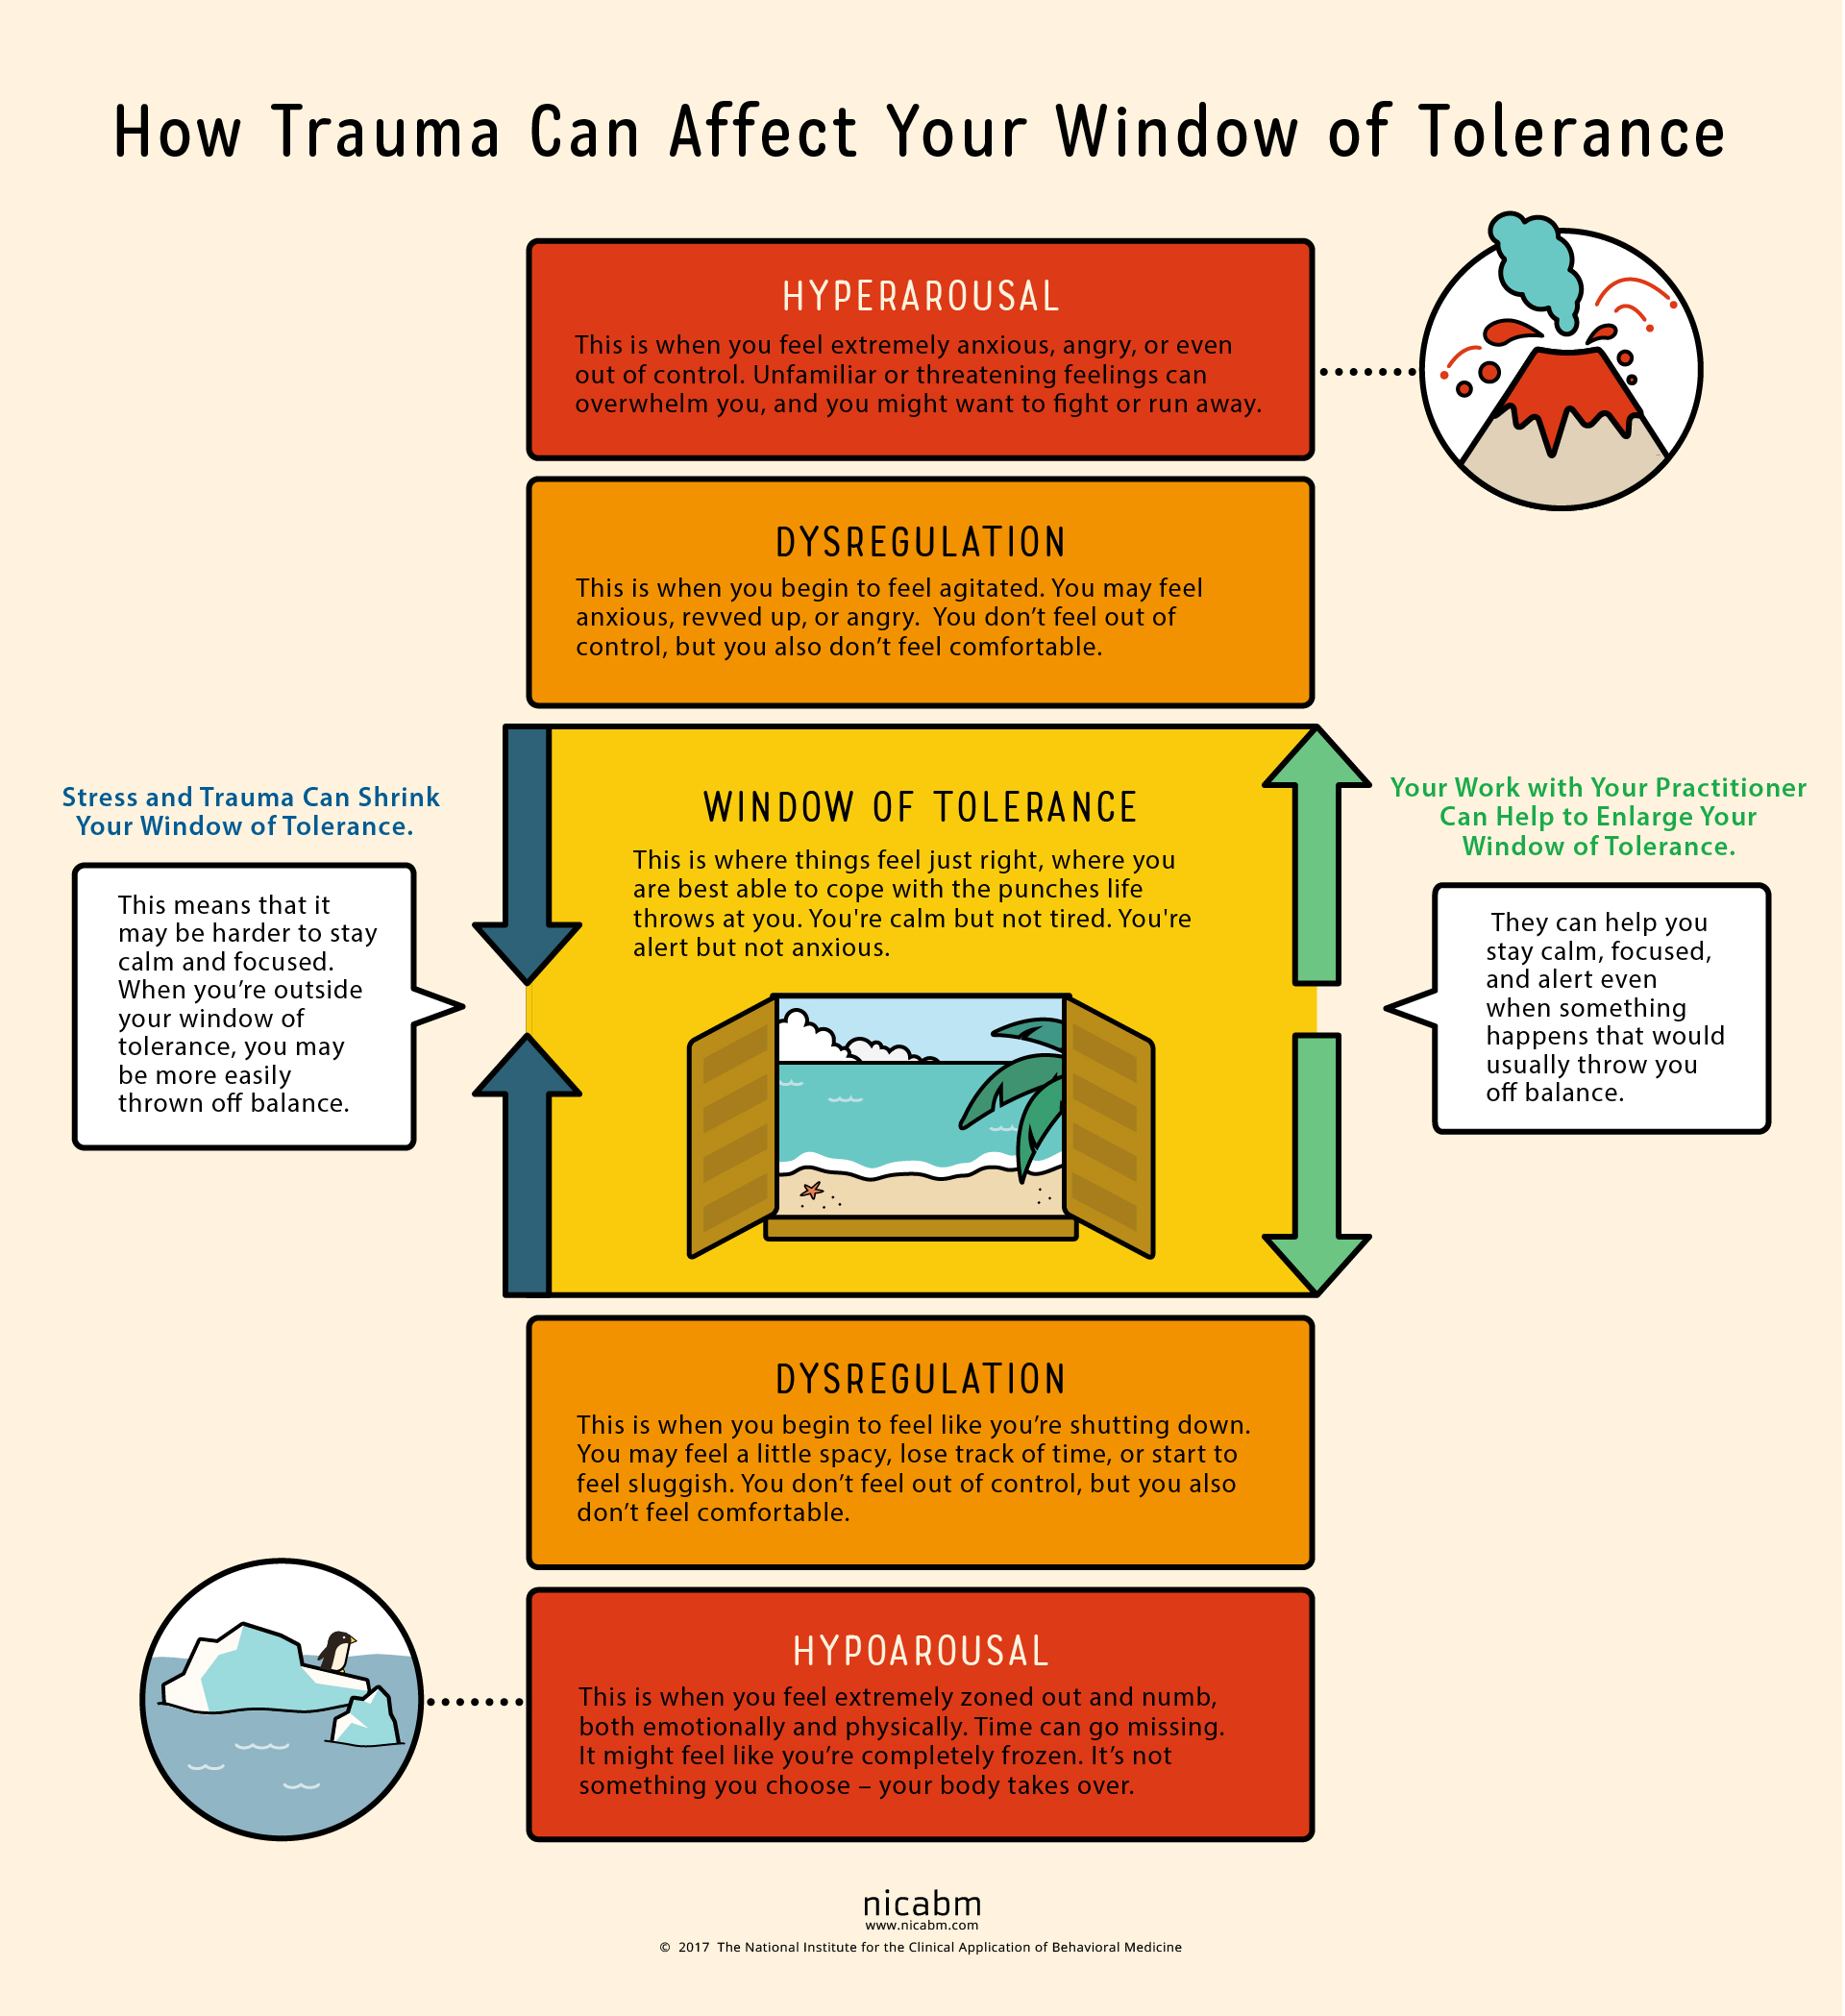 How To Help Your Clients Understand Their Window Of